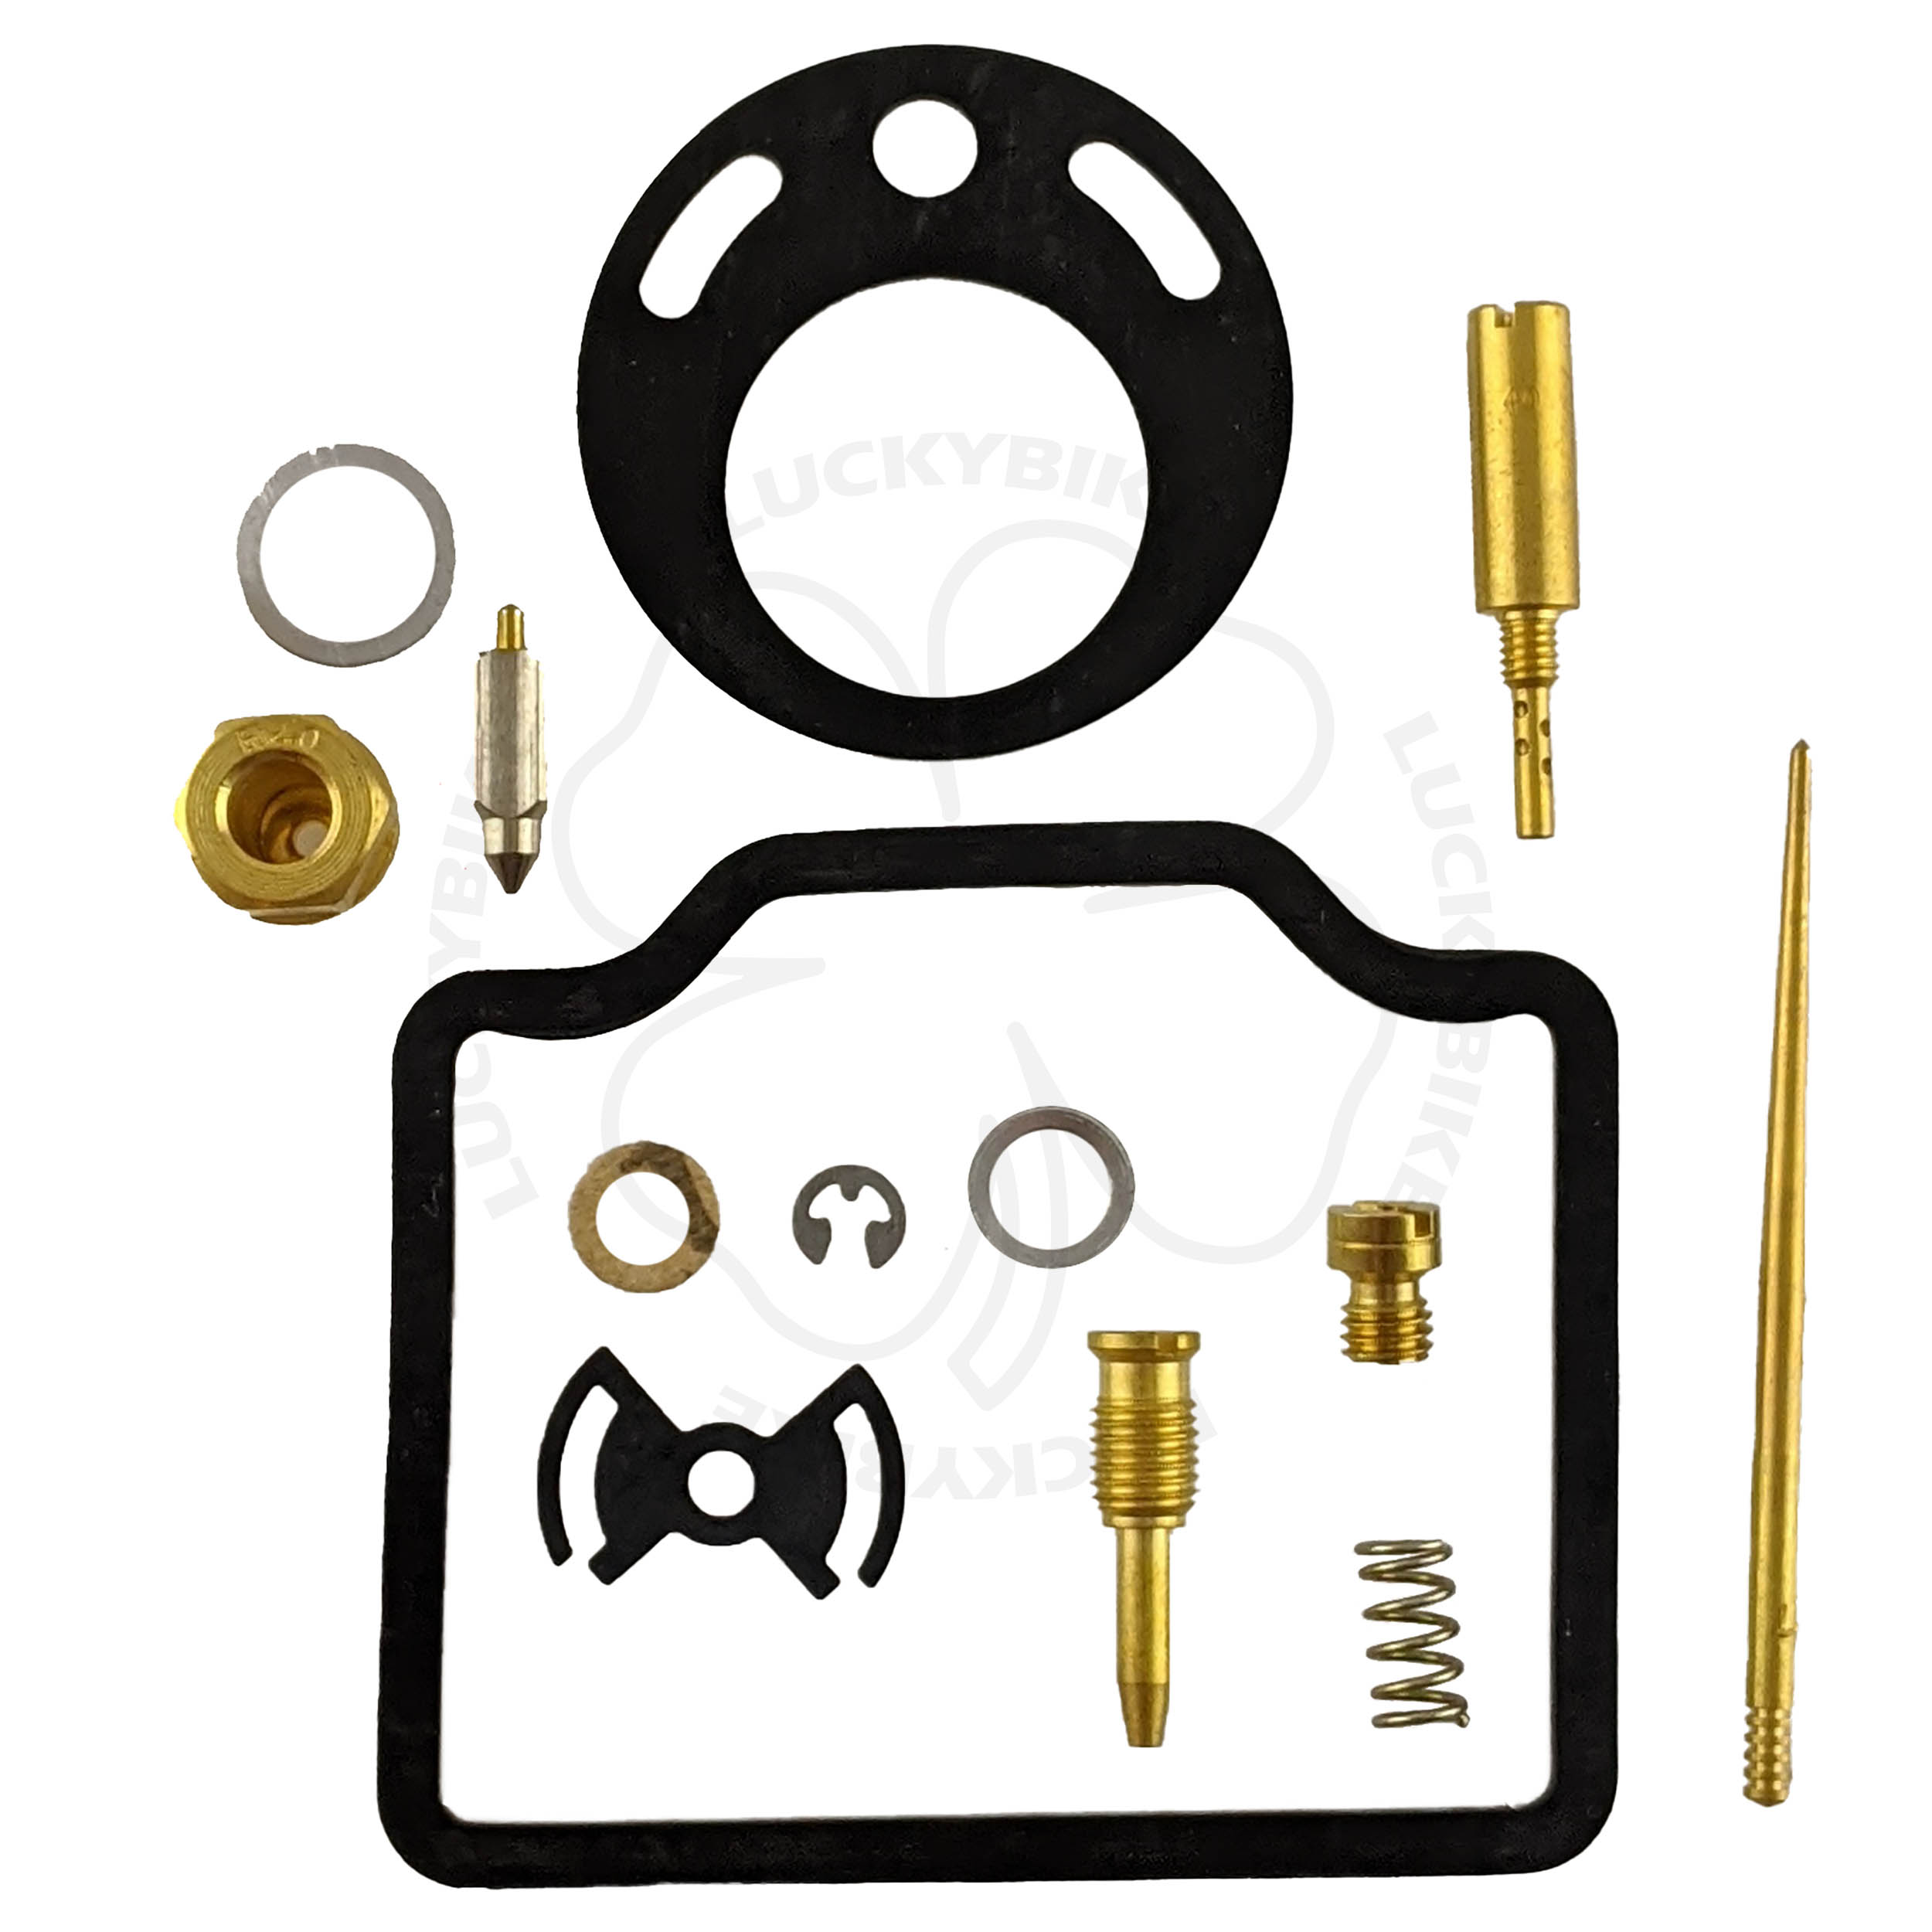 Carb Kit - Honda - CB 750 K1 F1 FOUR 1969-1970 - x1 (x2)